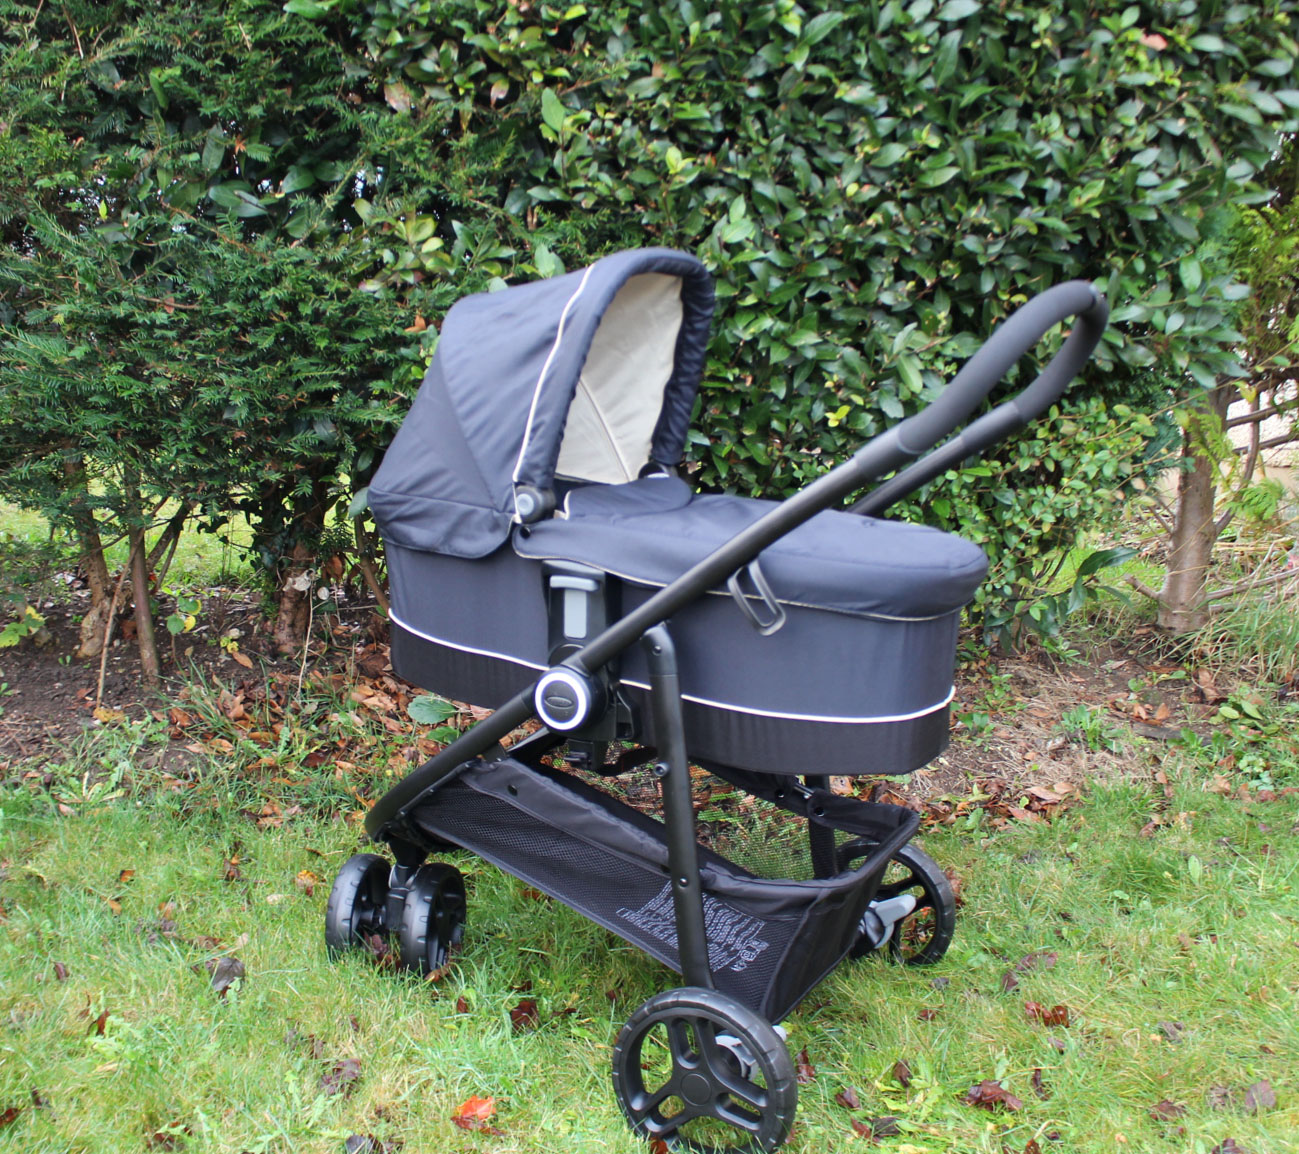 Graco carrycot, Graco Modes 3 Lite, Graco review, #generationgraco